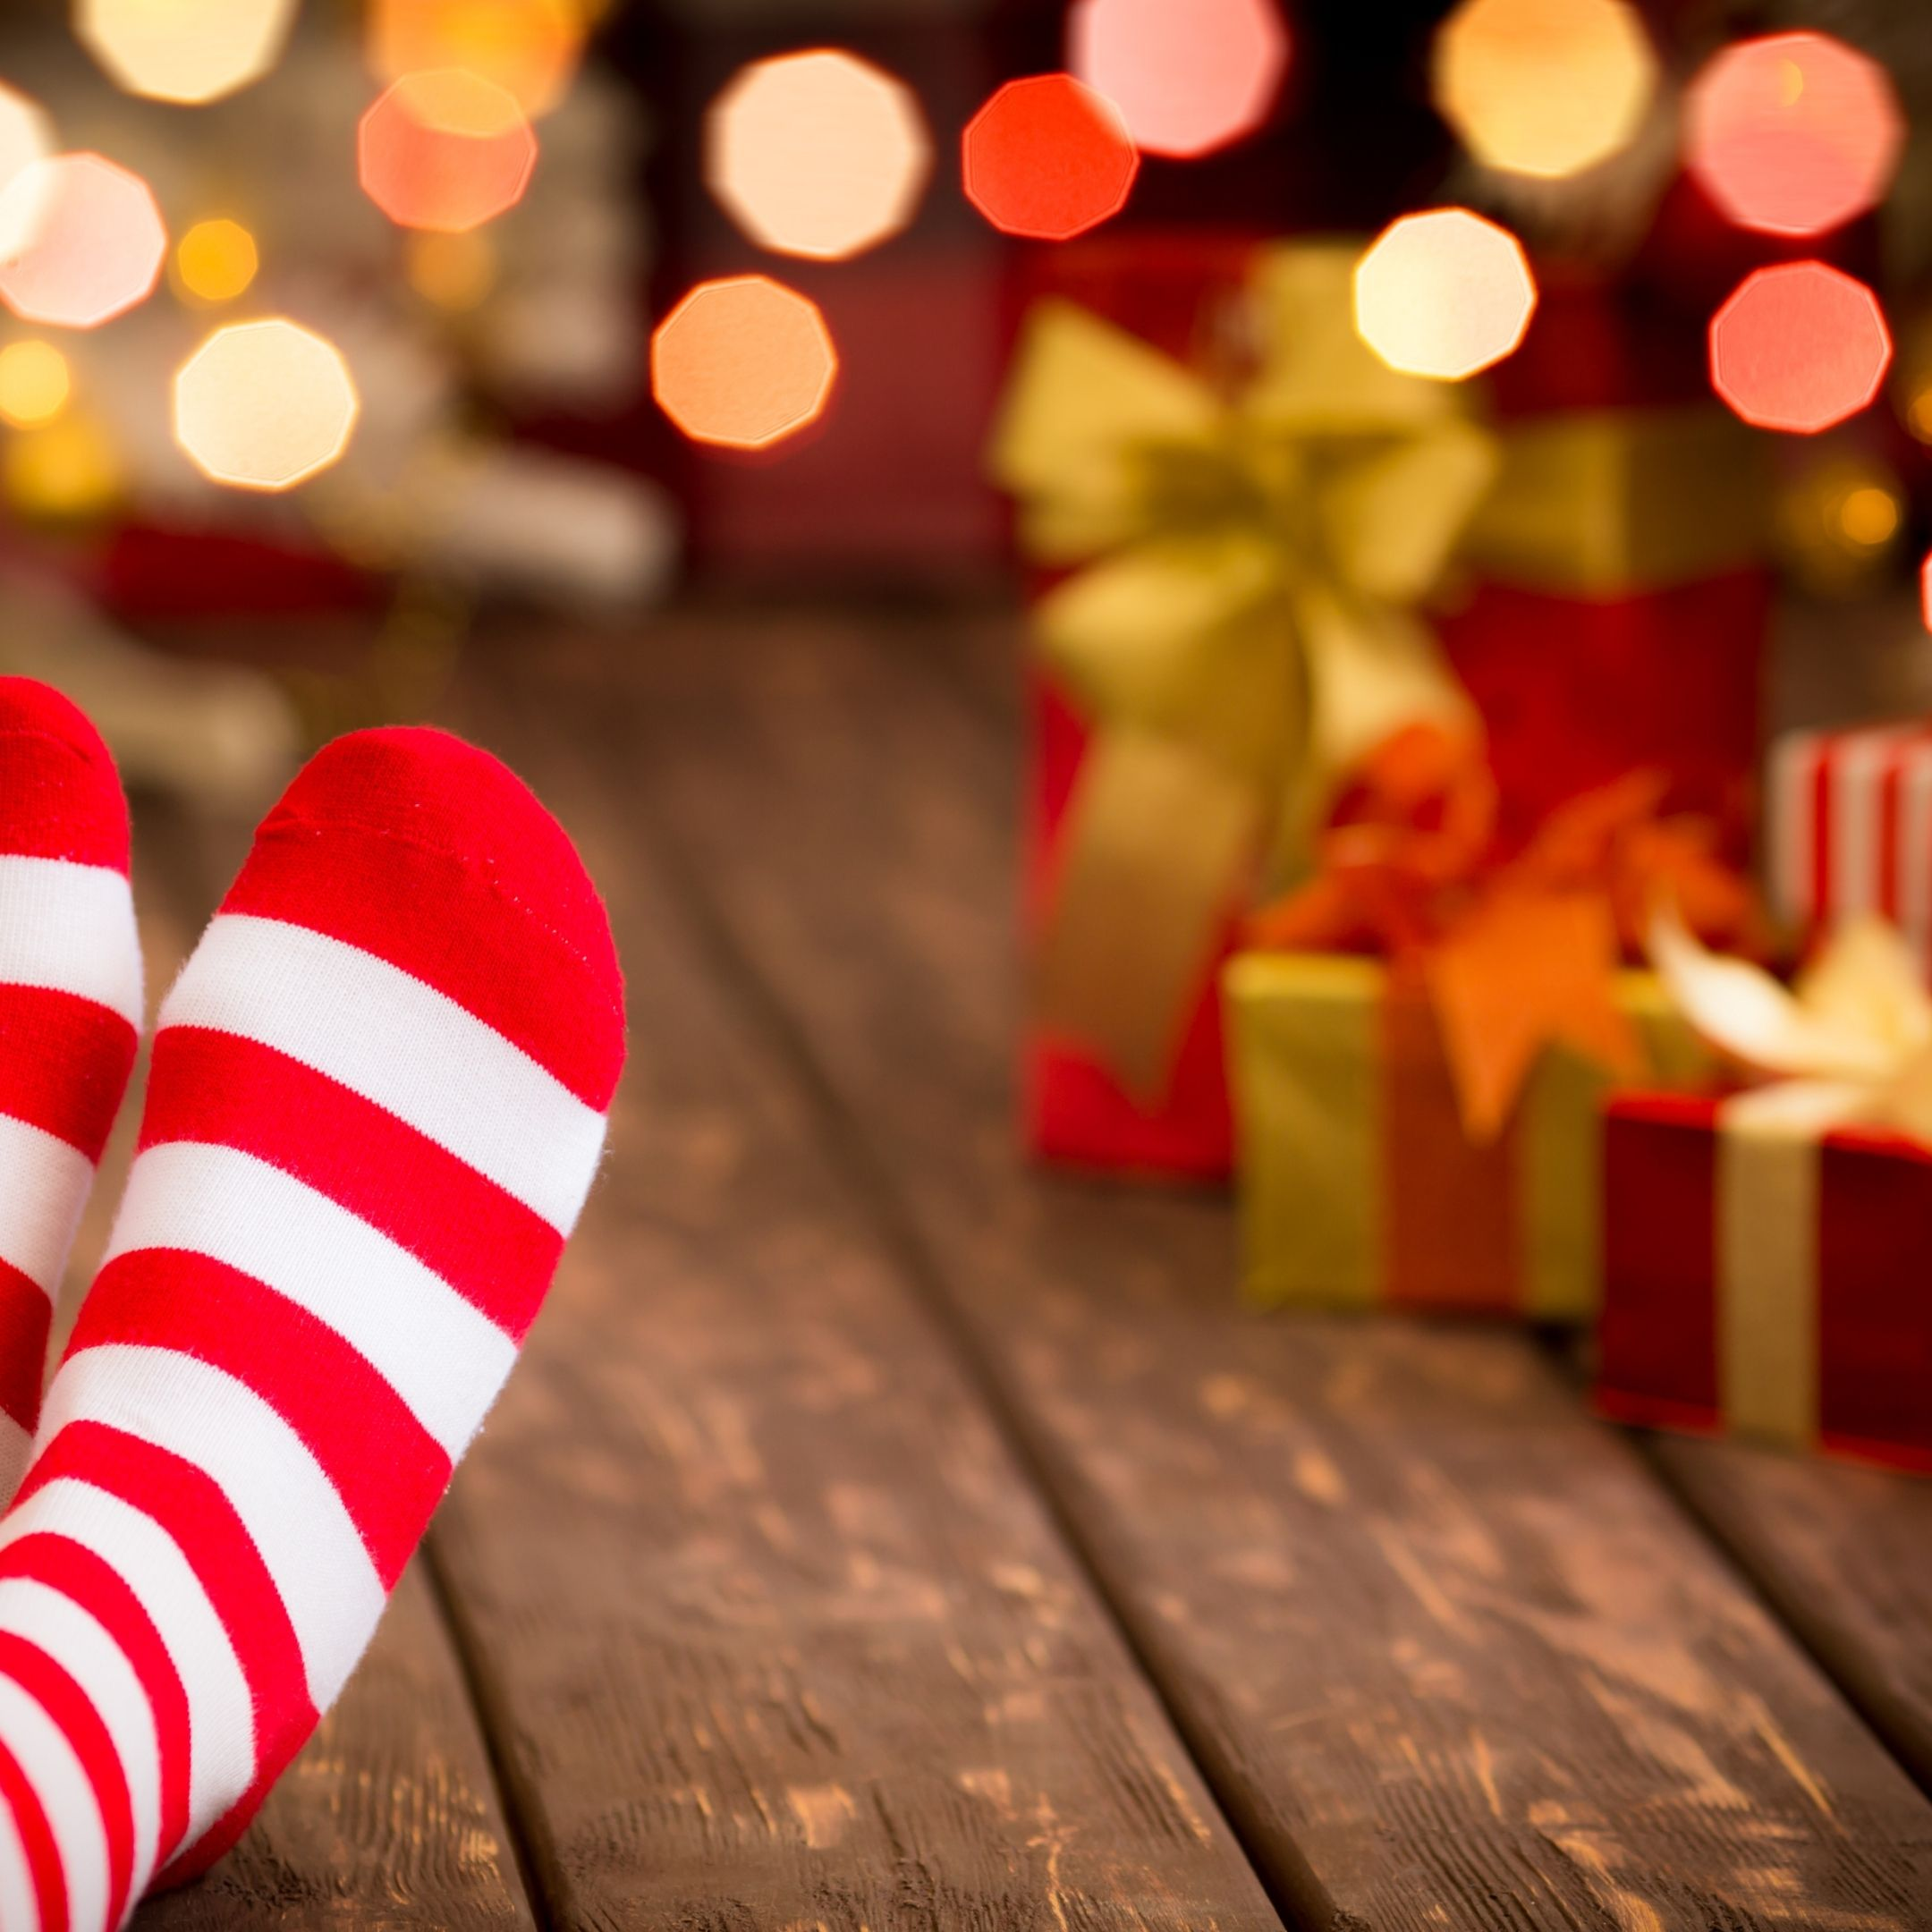 stocking feet near wrapped holiday gifts gift ideas